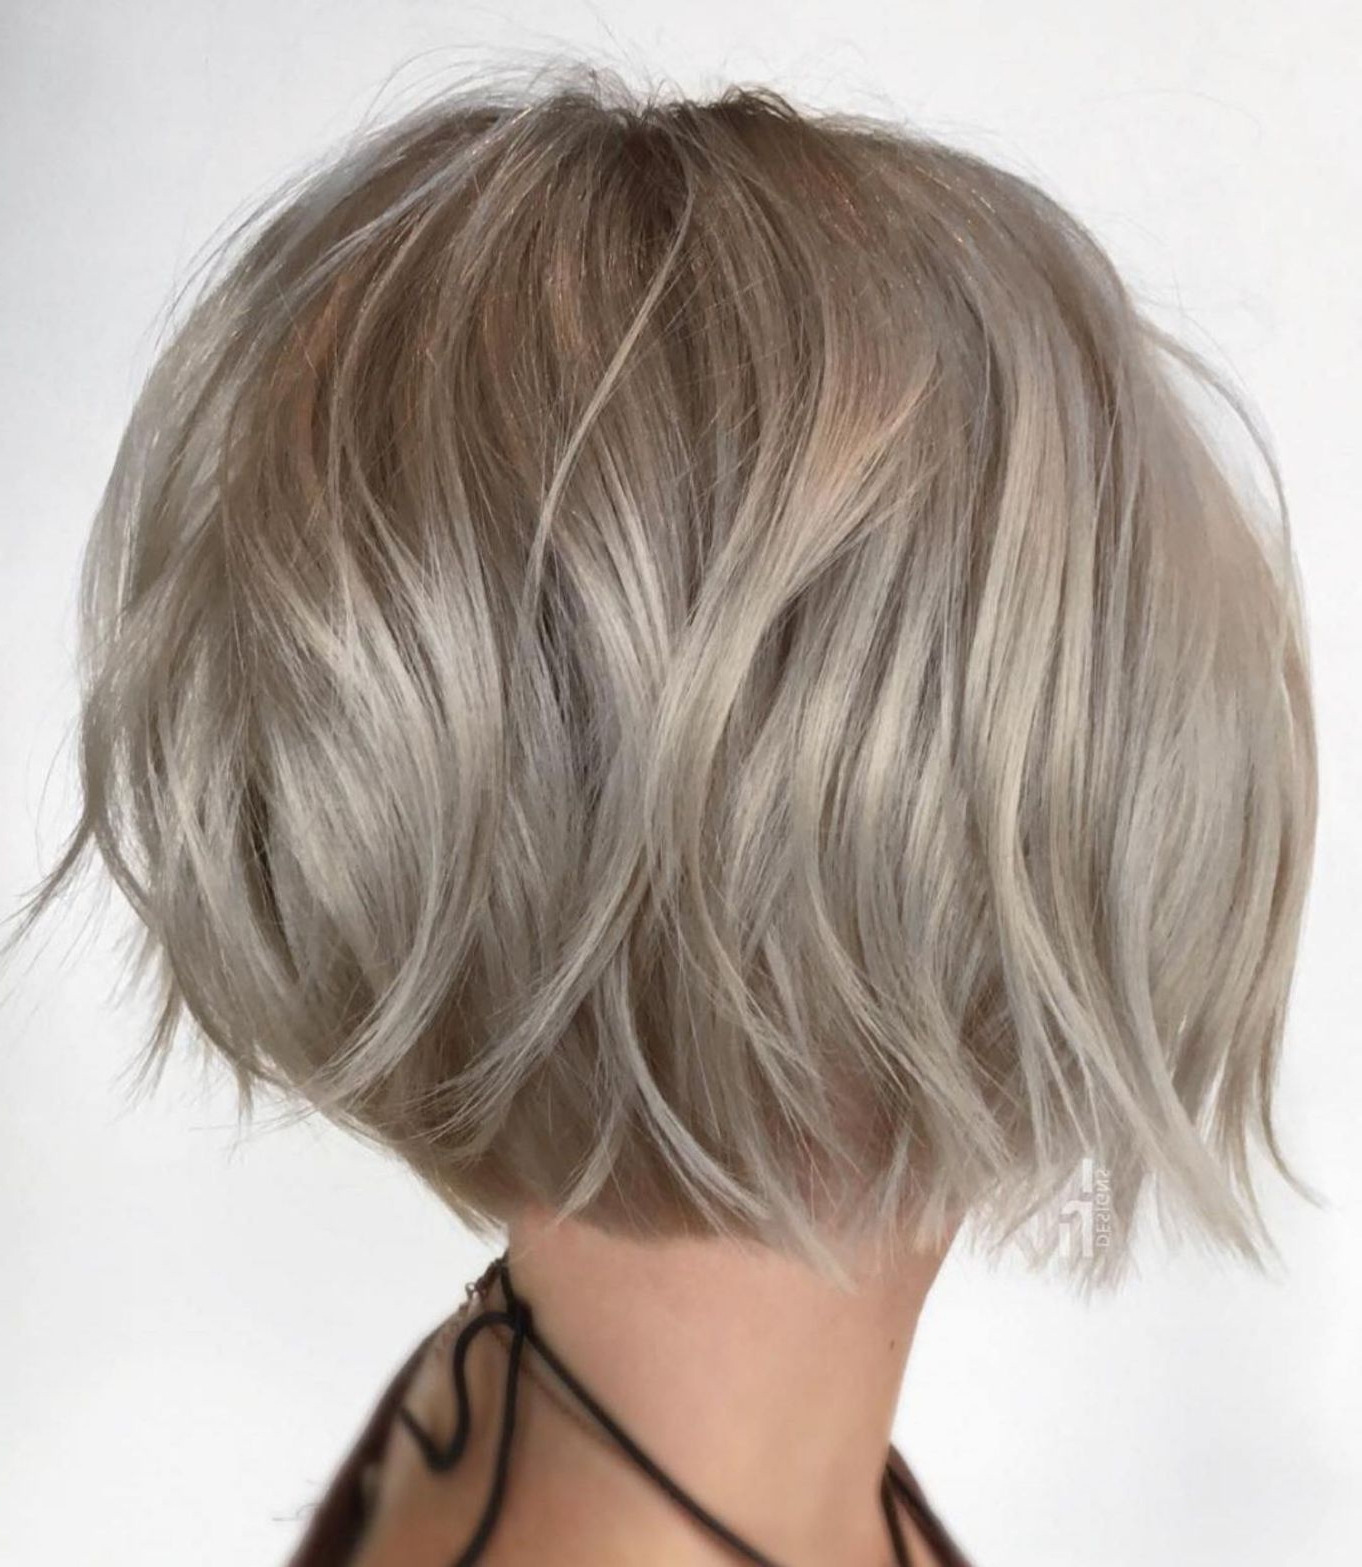 Fashion : Amazing Choppy Side Parted Pixie Bob Hairstyles Photo 100 With Widely Used Choppy Side Parted Bob Hairstyles (View 8 of 20)